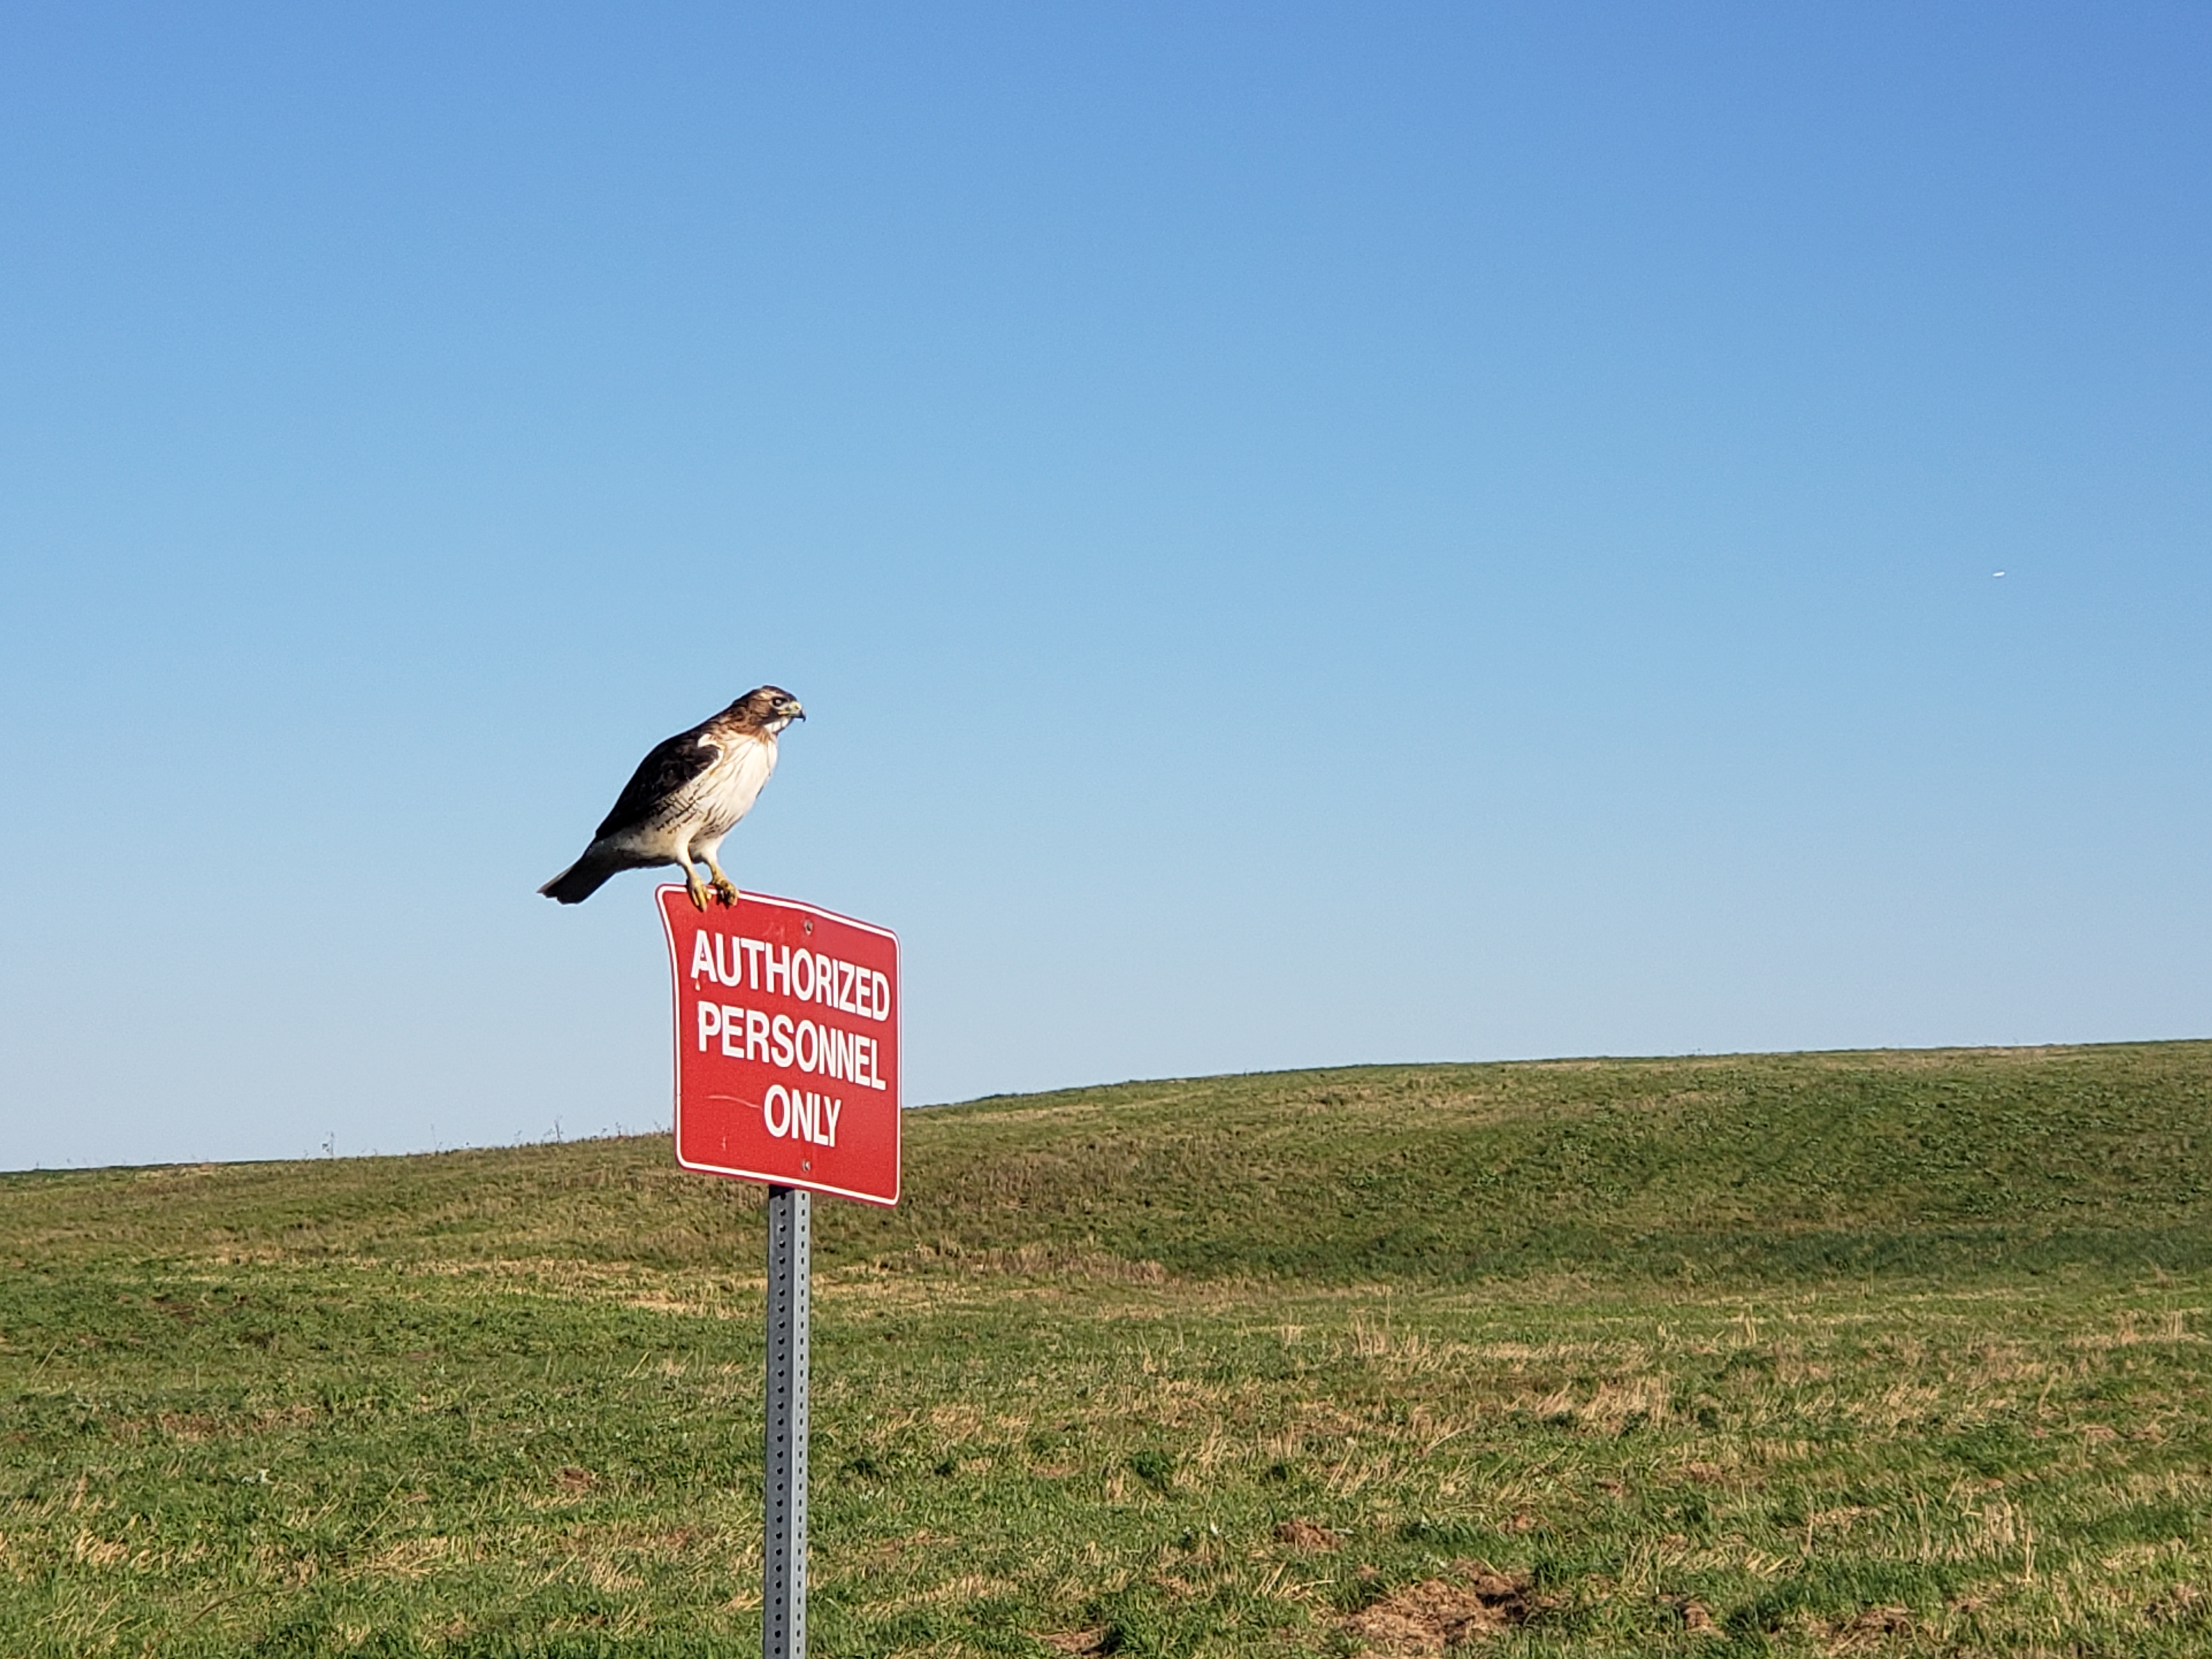 The IOTA/FAST guard hawk stands at the ready outside NML. nature, wildlife, animal, bird, hawk, landscape Photo: Jonathan Jarvis